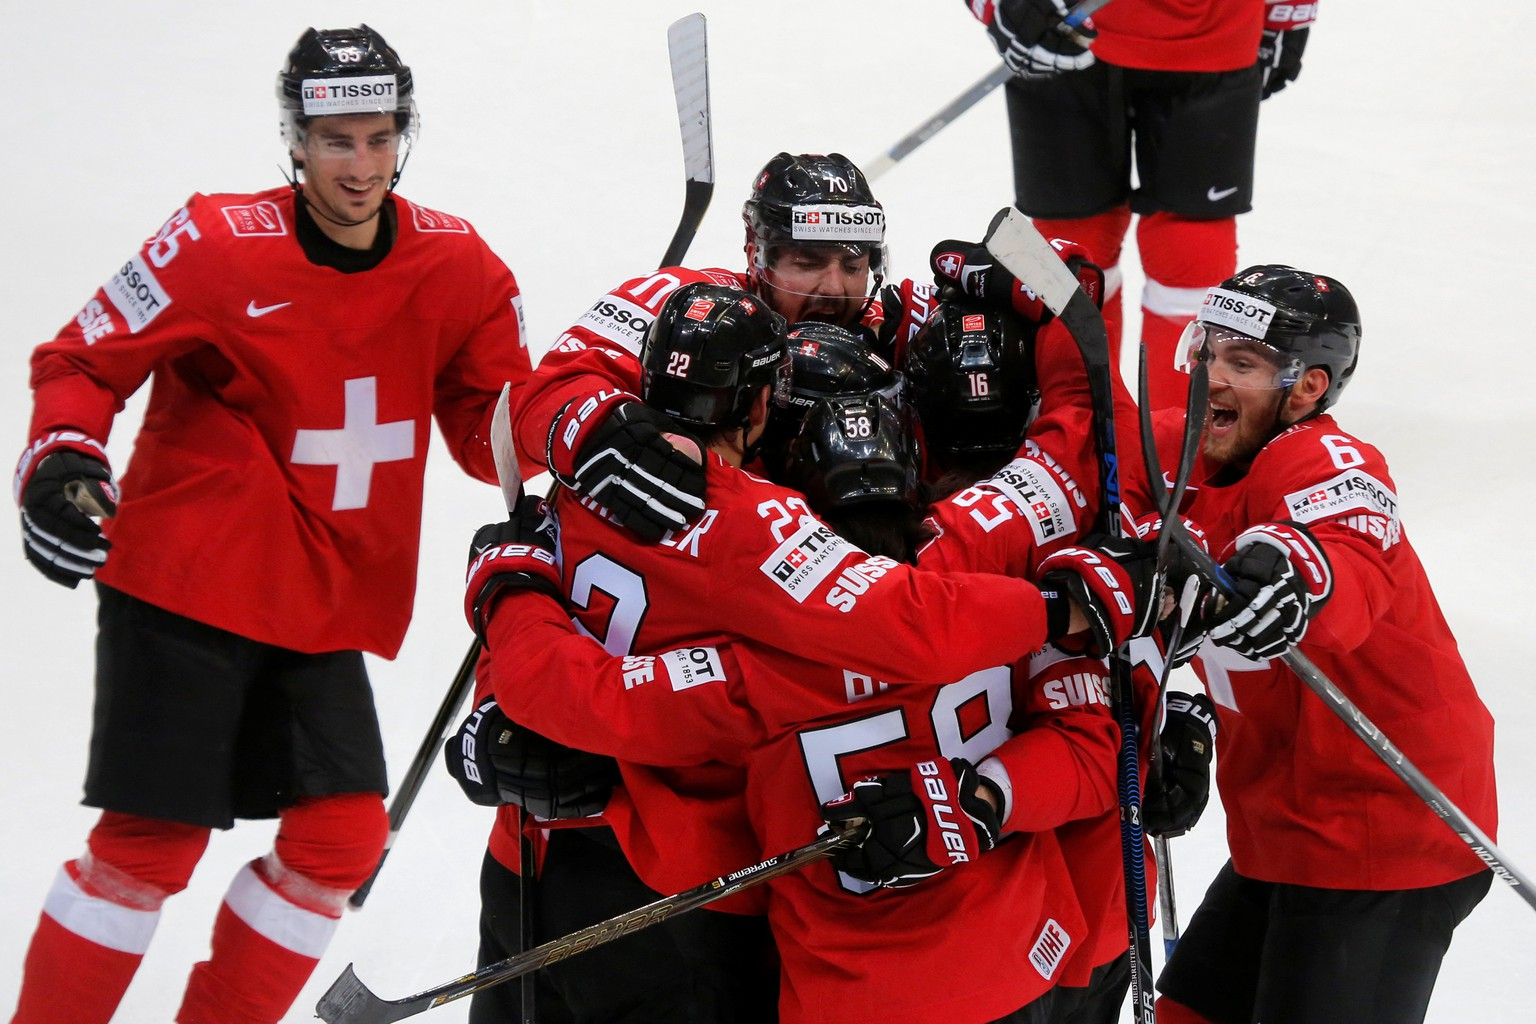 Ice Hockey - 2016 IIHF World Championship - Group A - Switzerland v Denmark - Moscow, Russia - 10/5/16 - Switzerland's national team players celebrate their victory against Denmark.  REUTERS/Maxim Shemetov